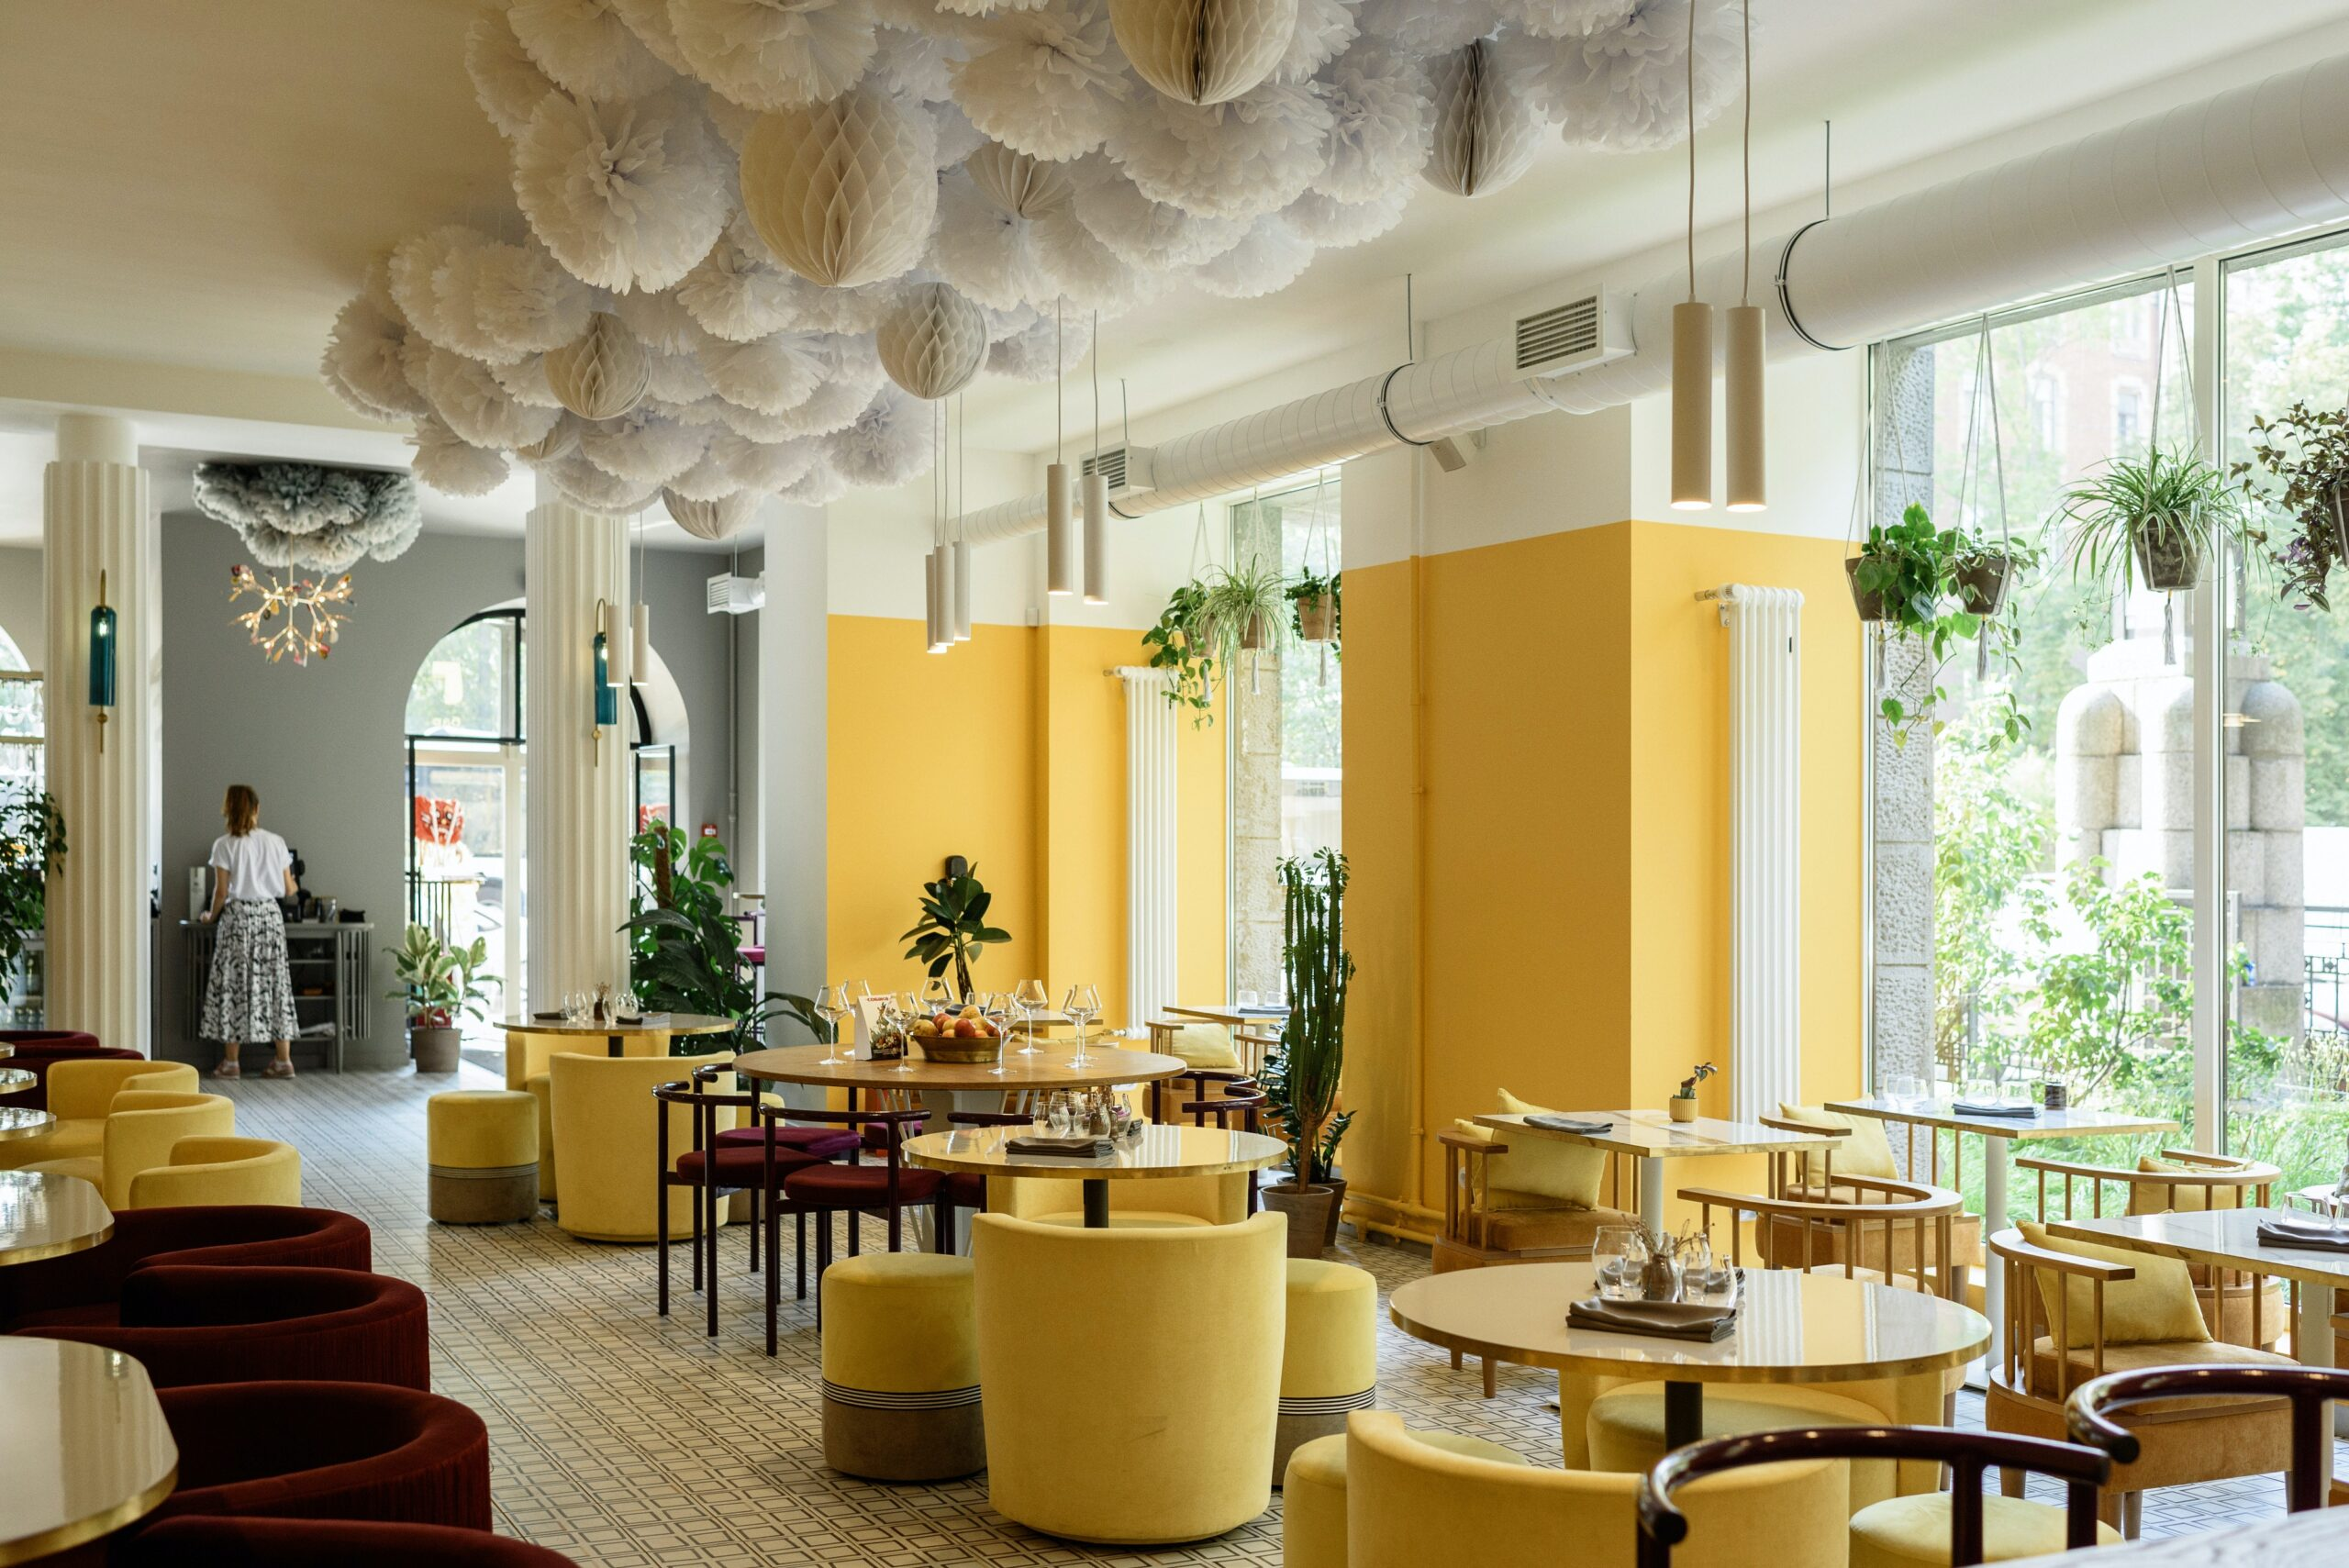 The Post-Pandemic Cleaning Challenges for Restaurants